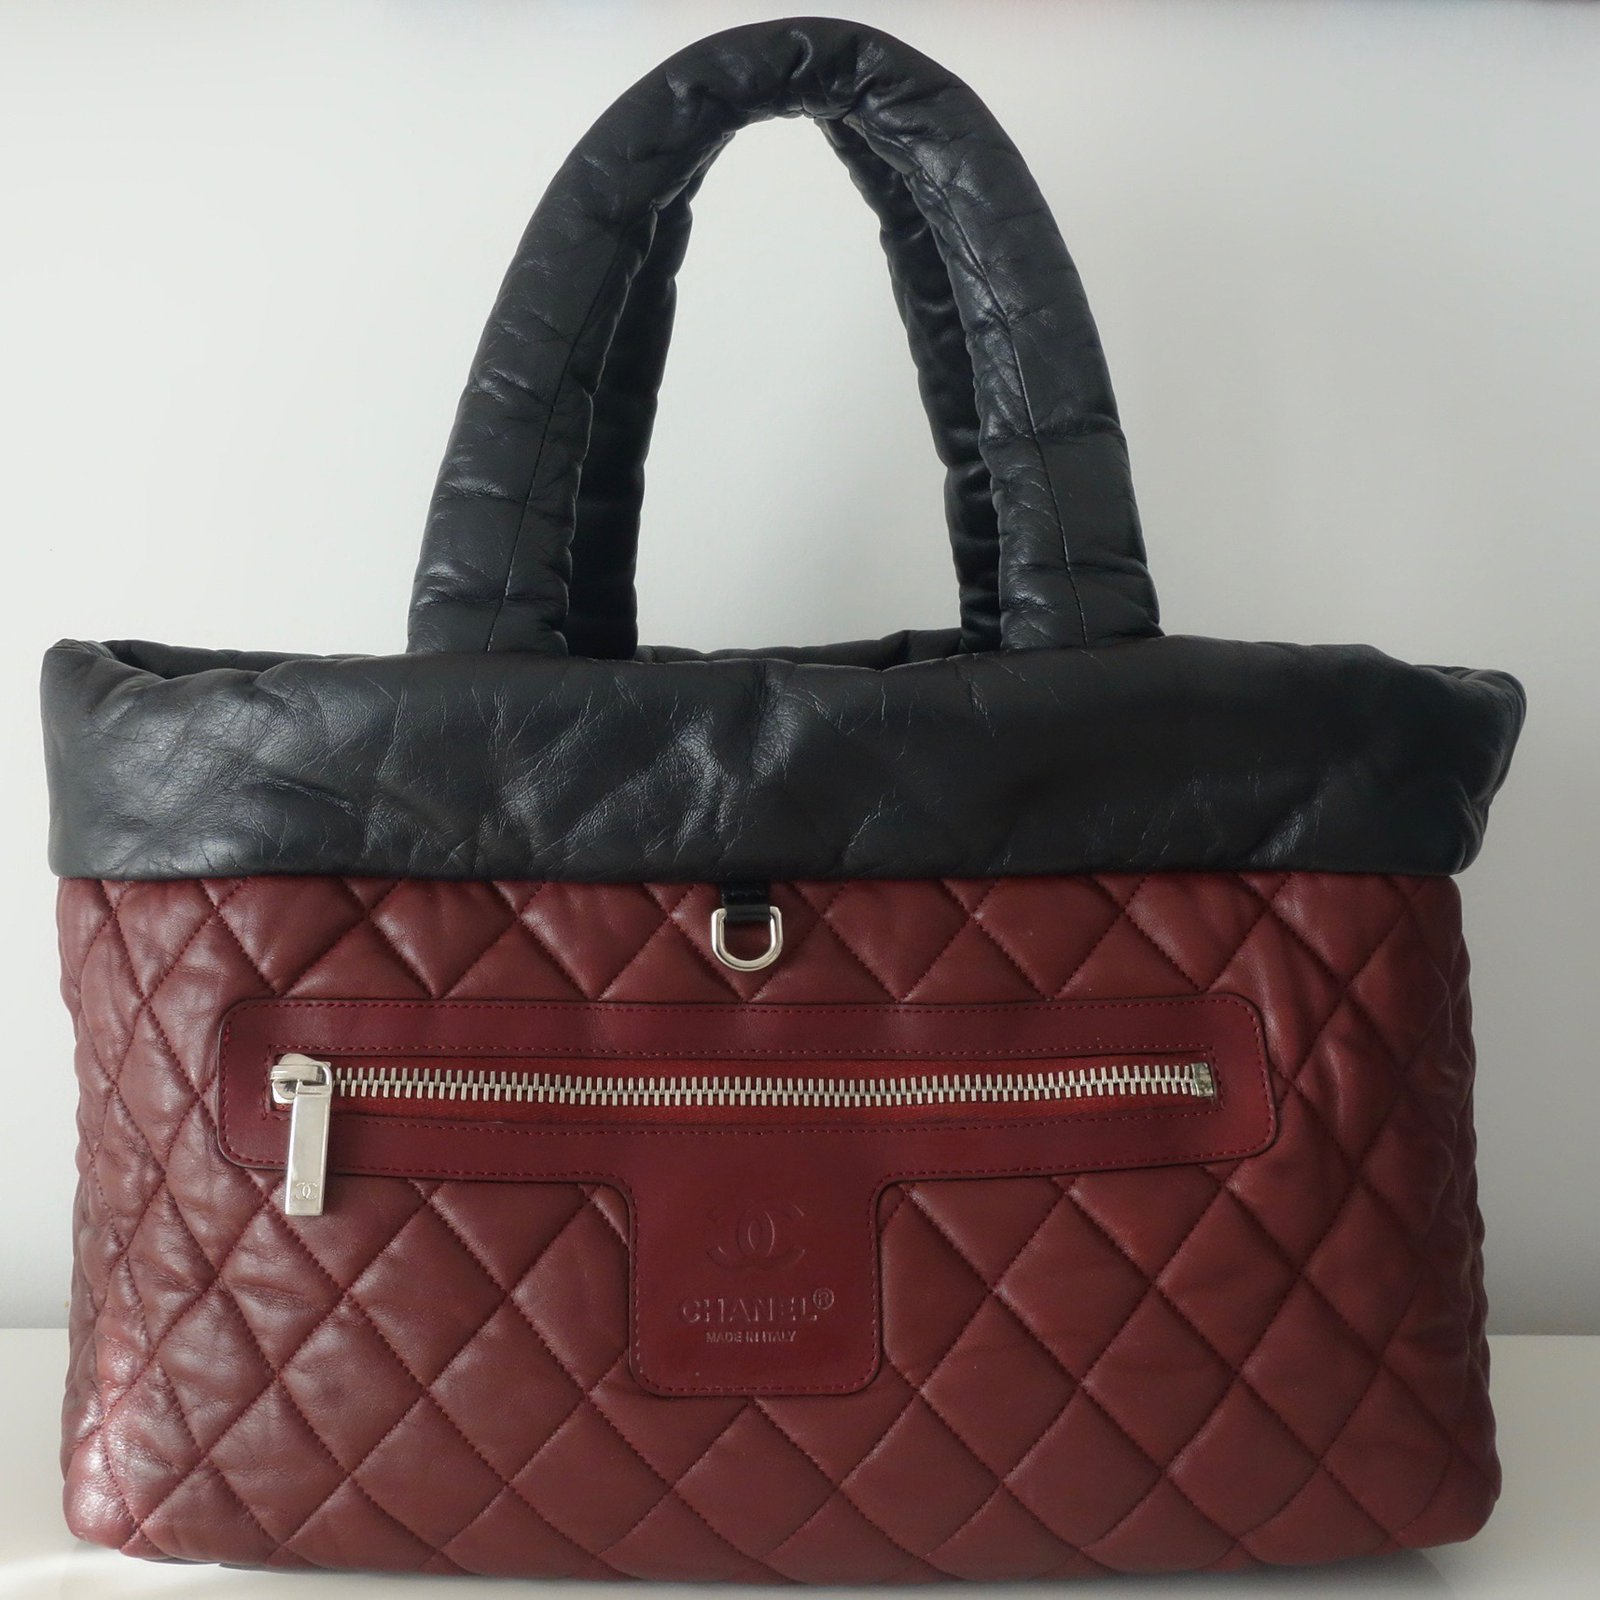 7c3c9c7aa343 Chanel Chanel shopping bag Cocoon - large model Reversible! Handbags  Leather Black ref.41894 - Joli Closet